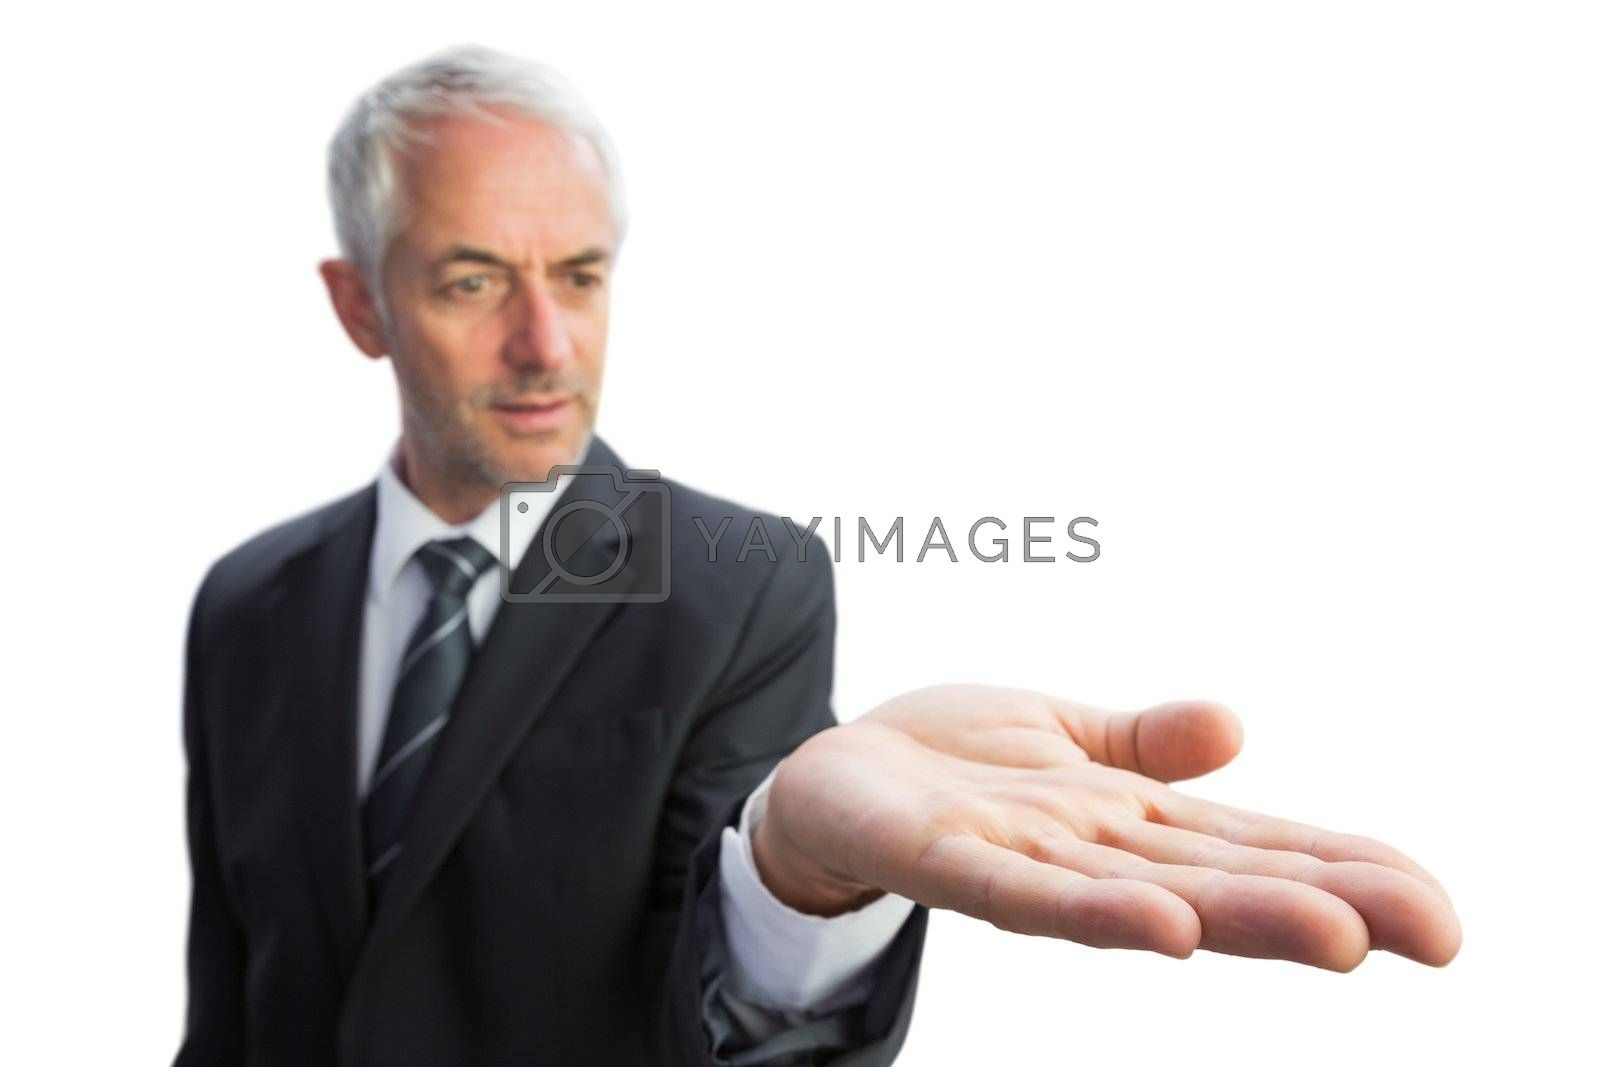 Concentrated businessman with palm up by Wavebreakmedia